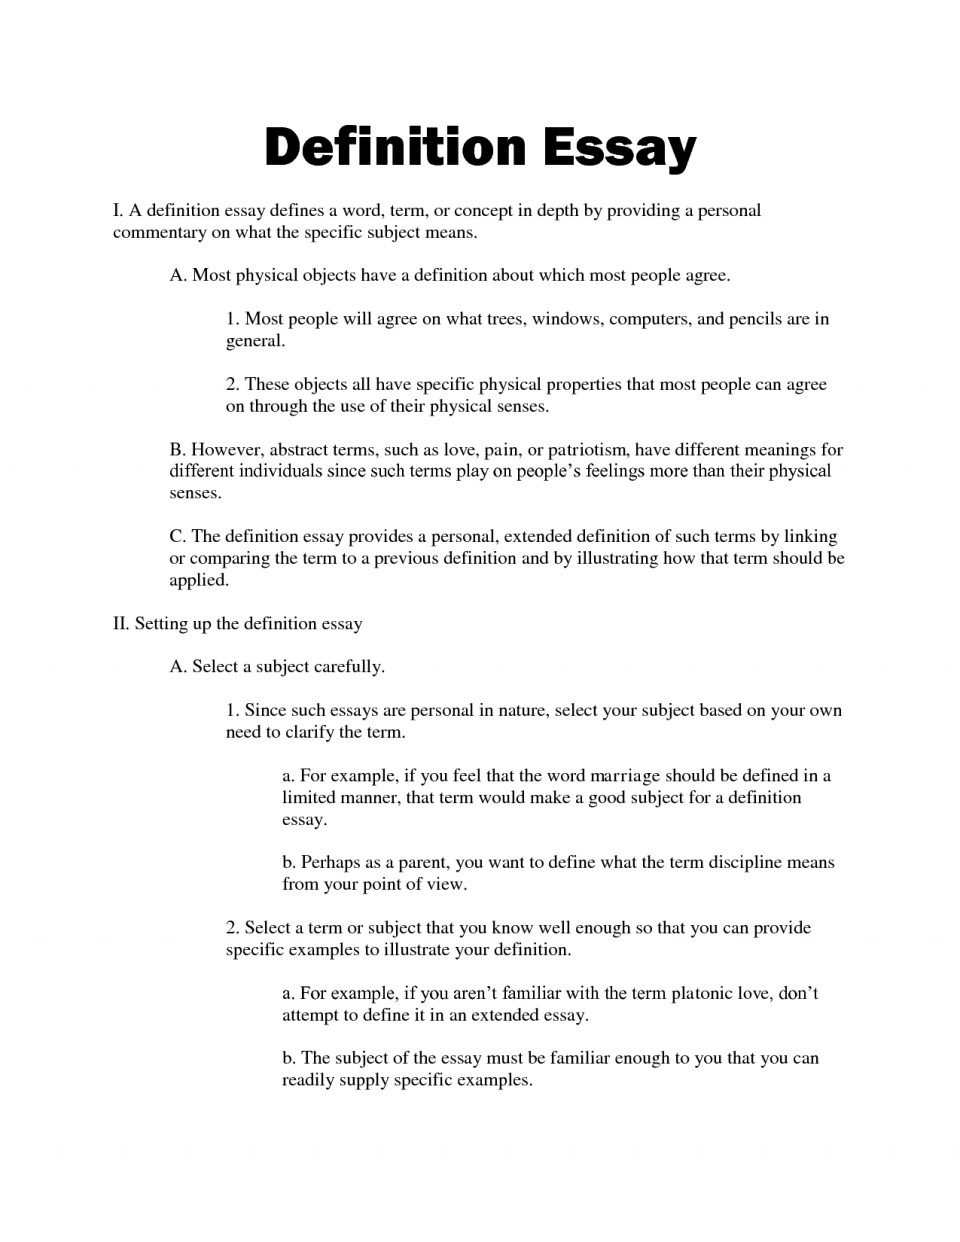 Definition essay ideas